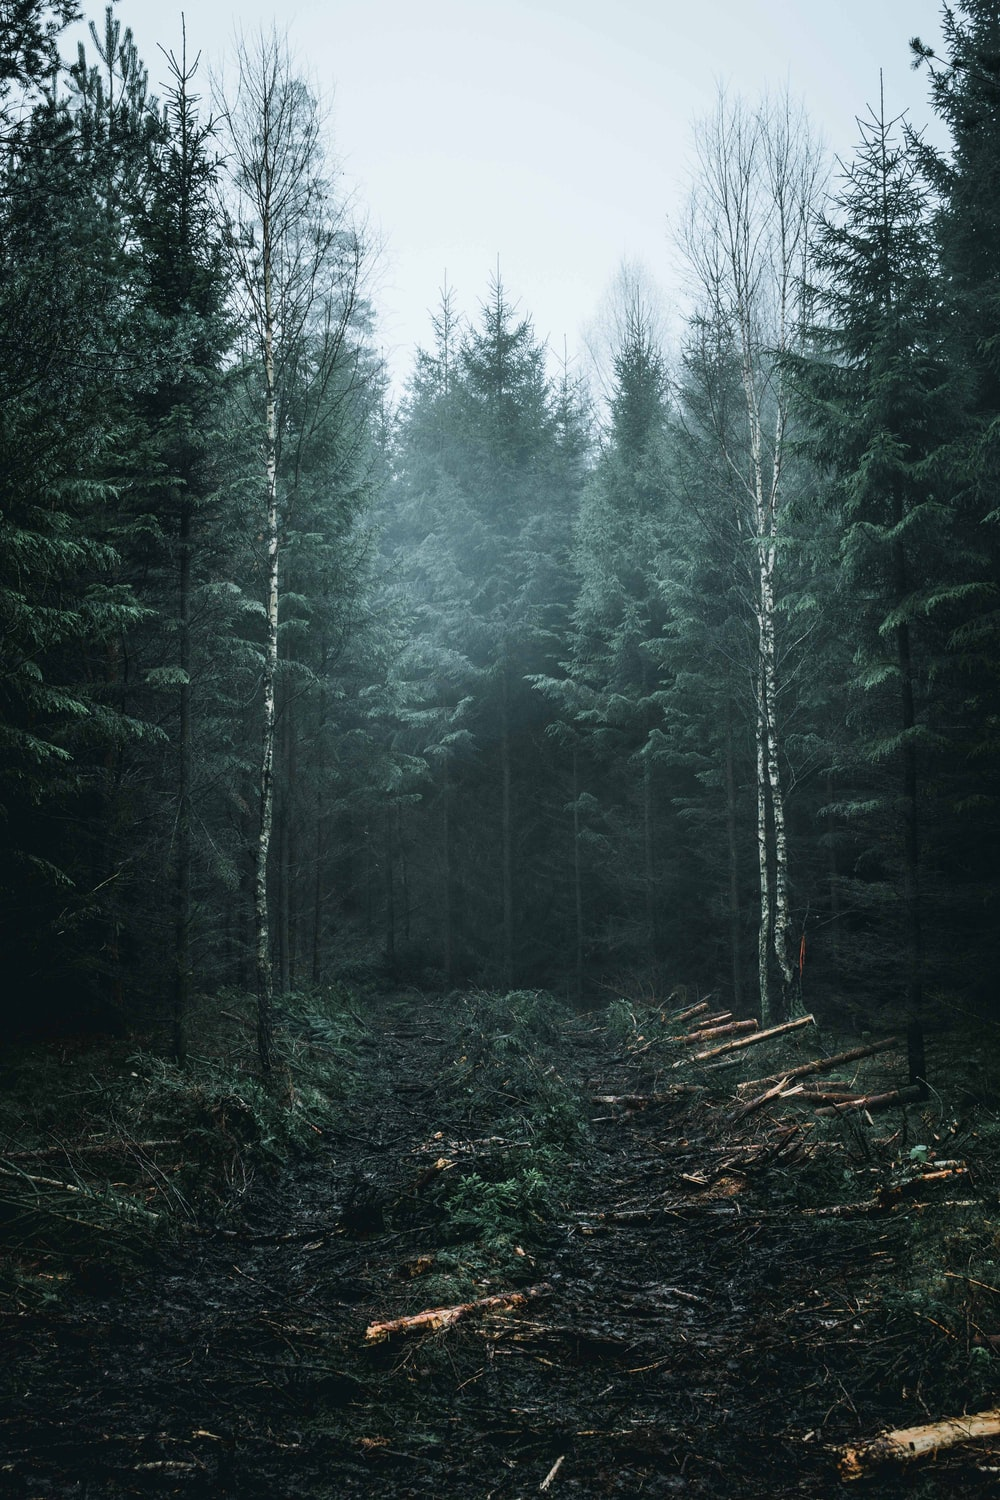 green forest under gray sky during daytime